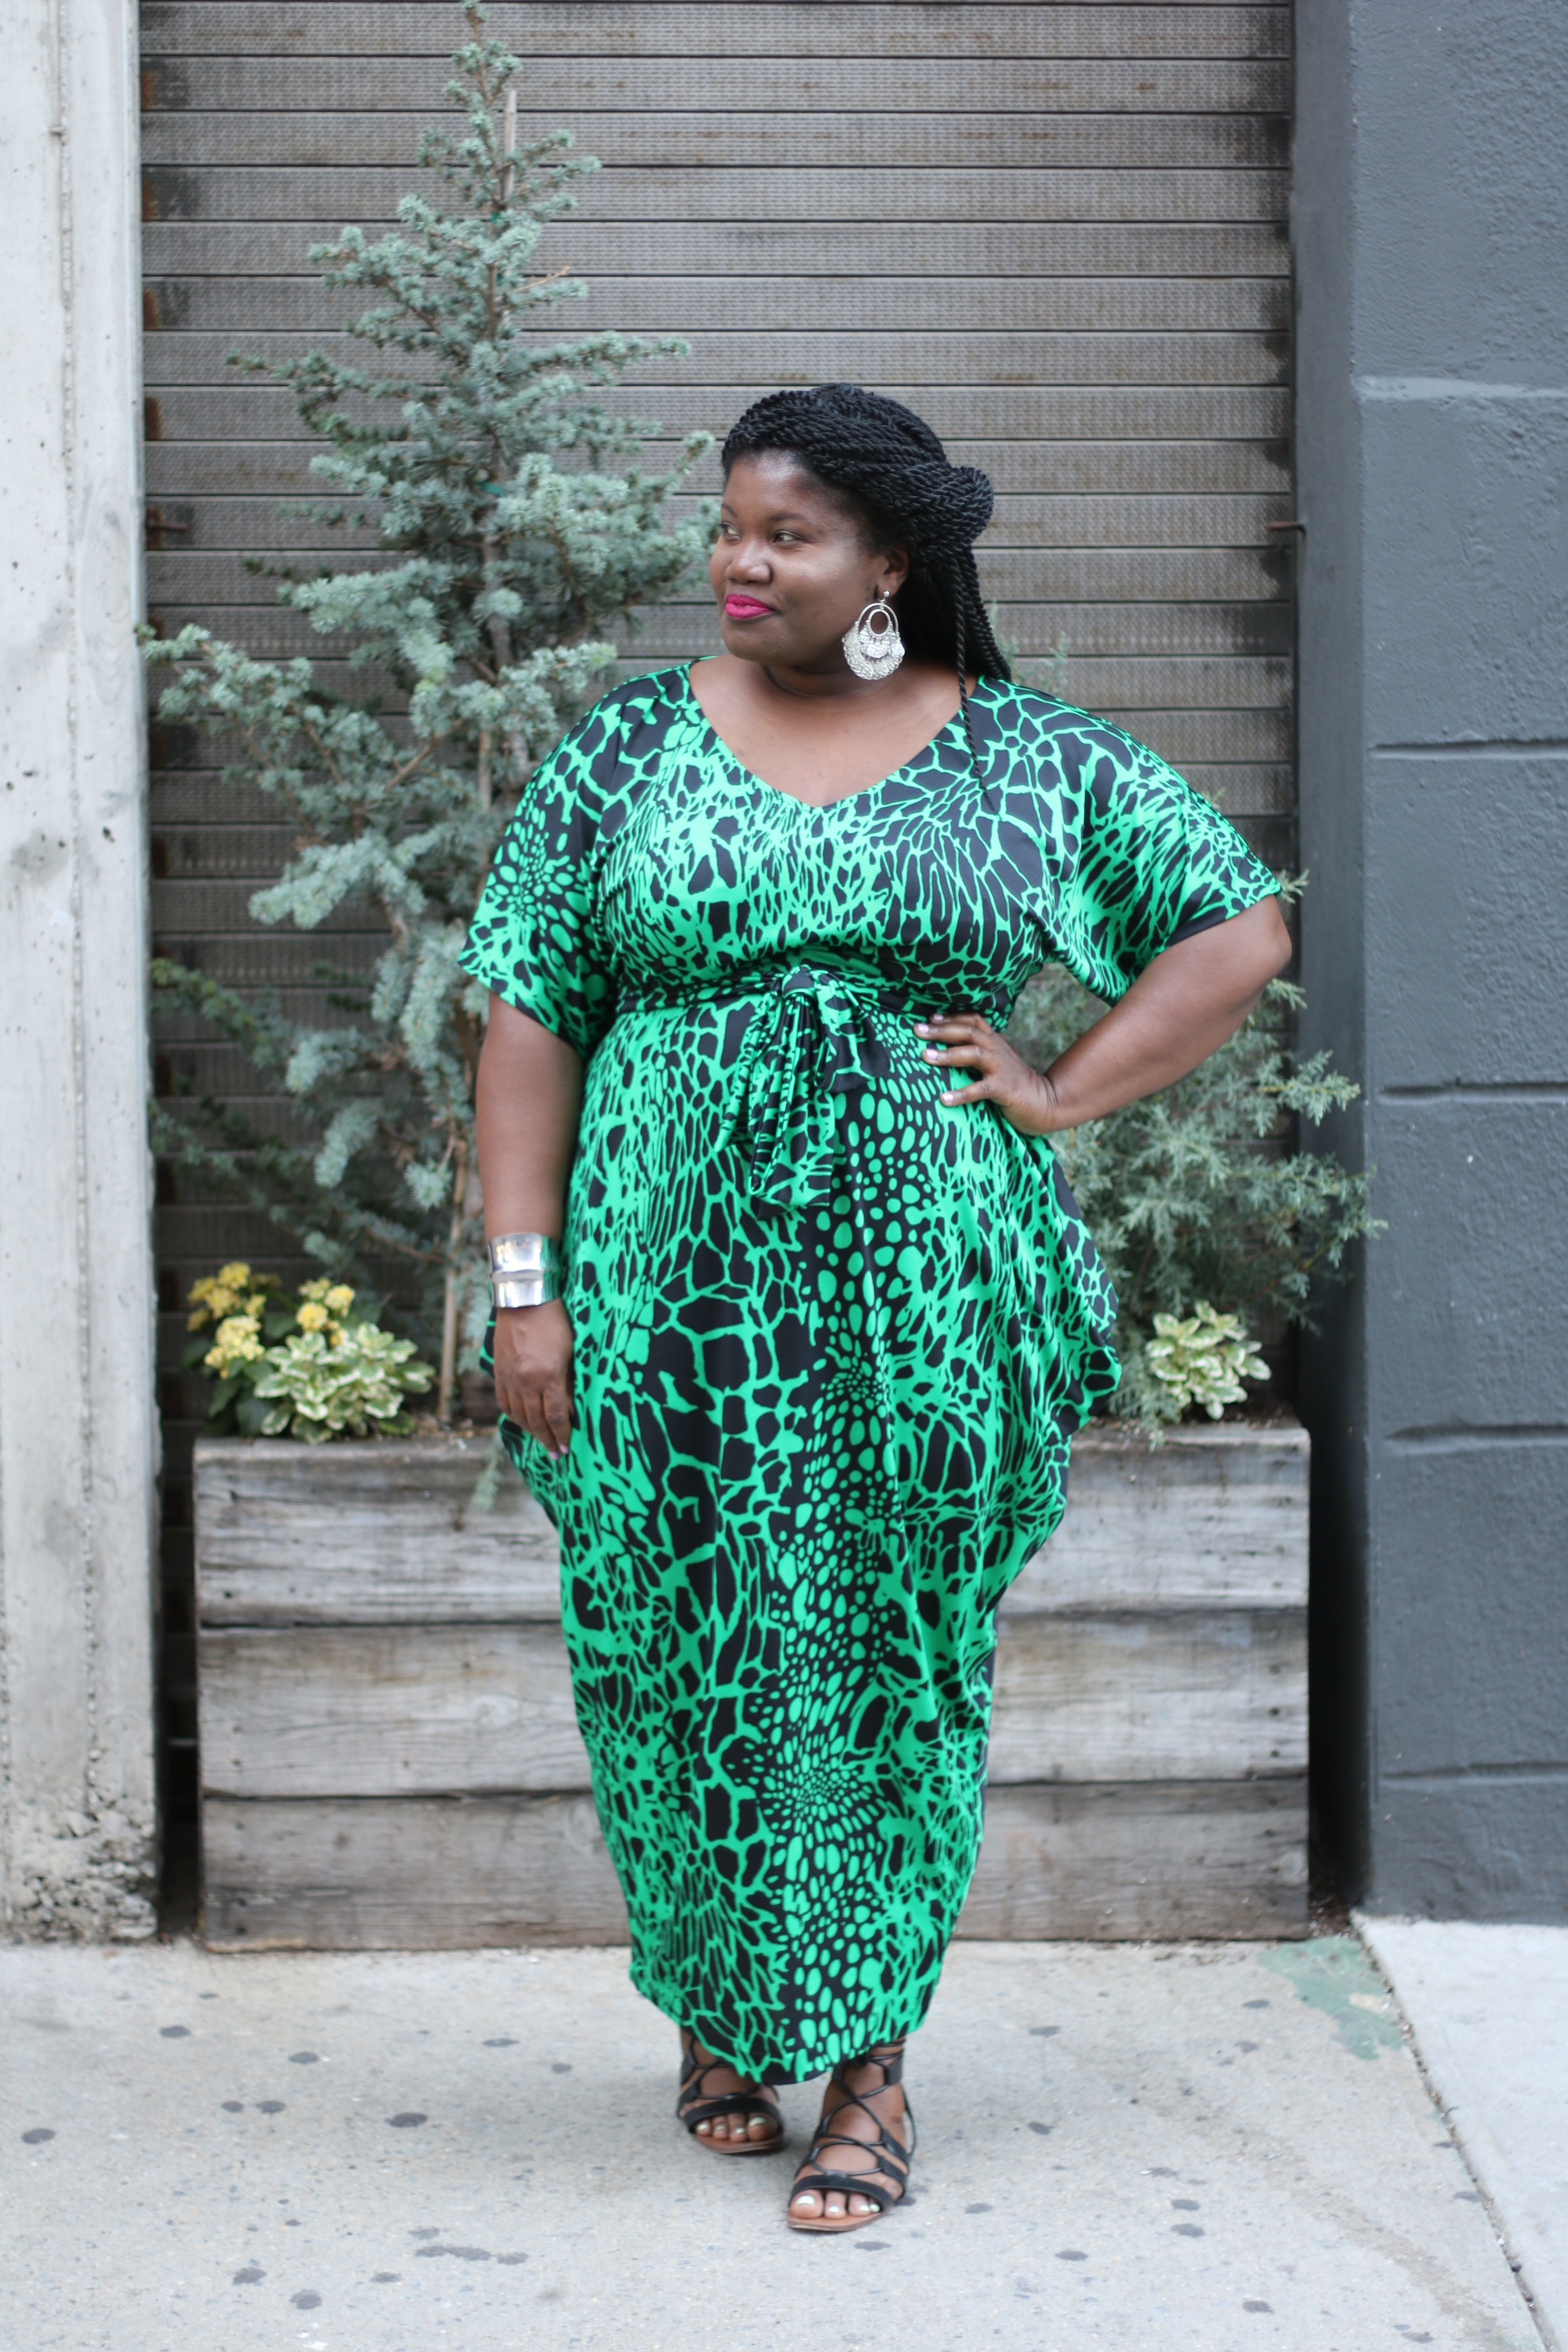 june 2016 – grown and curvy woman